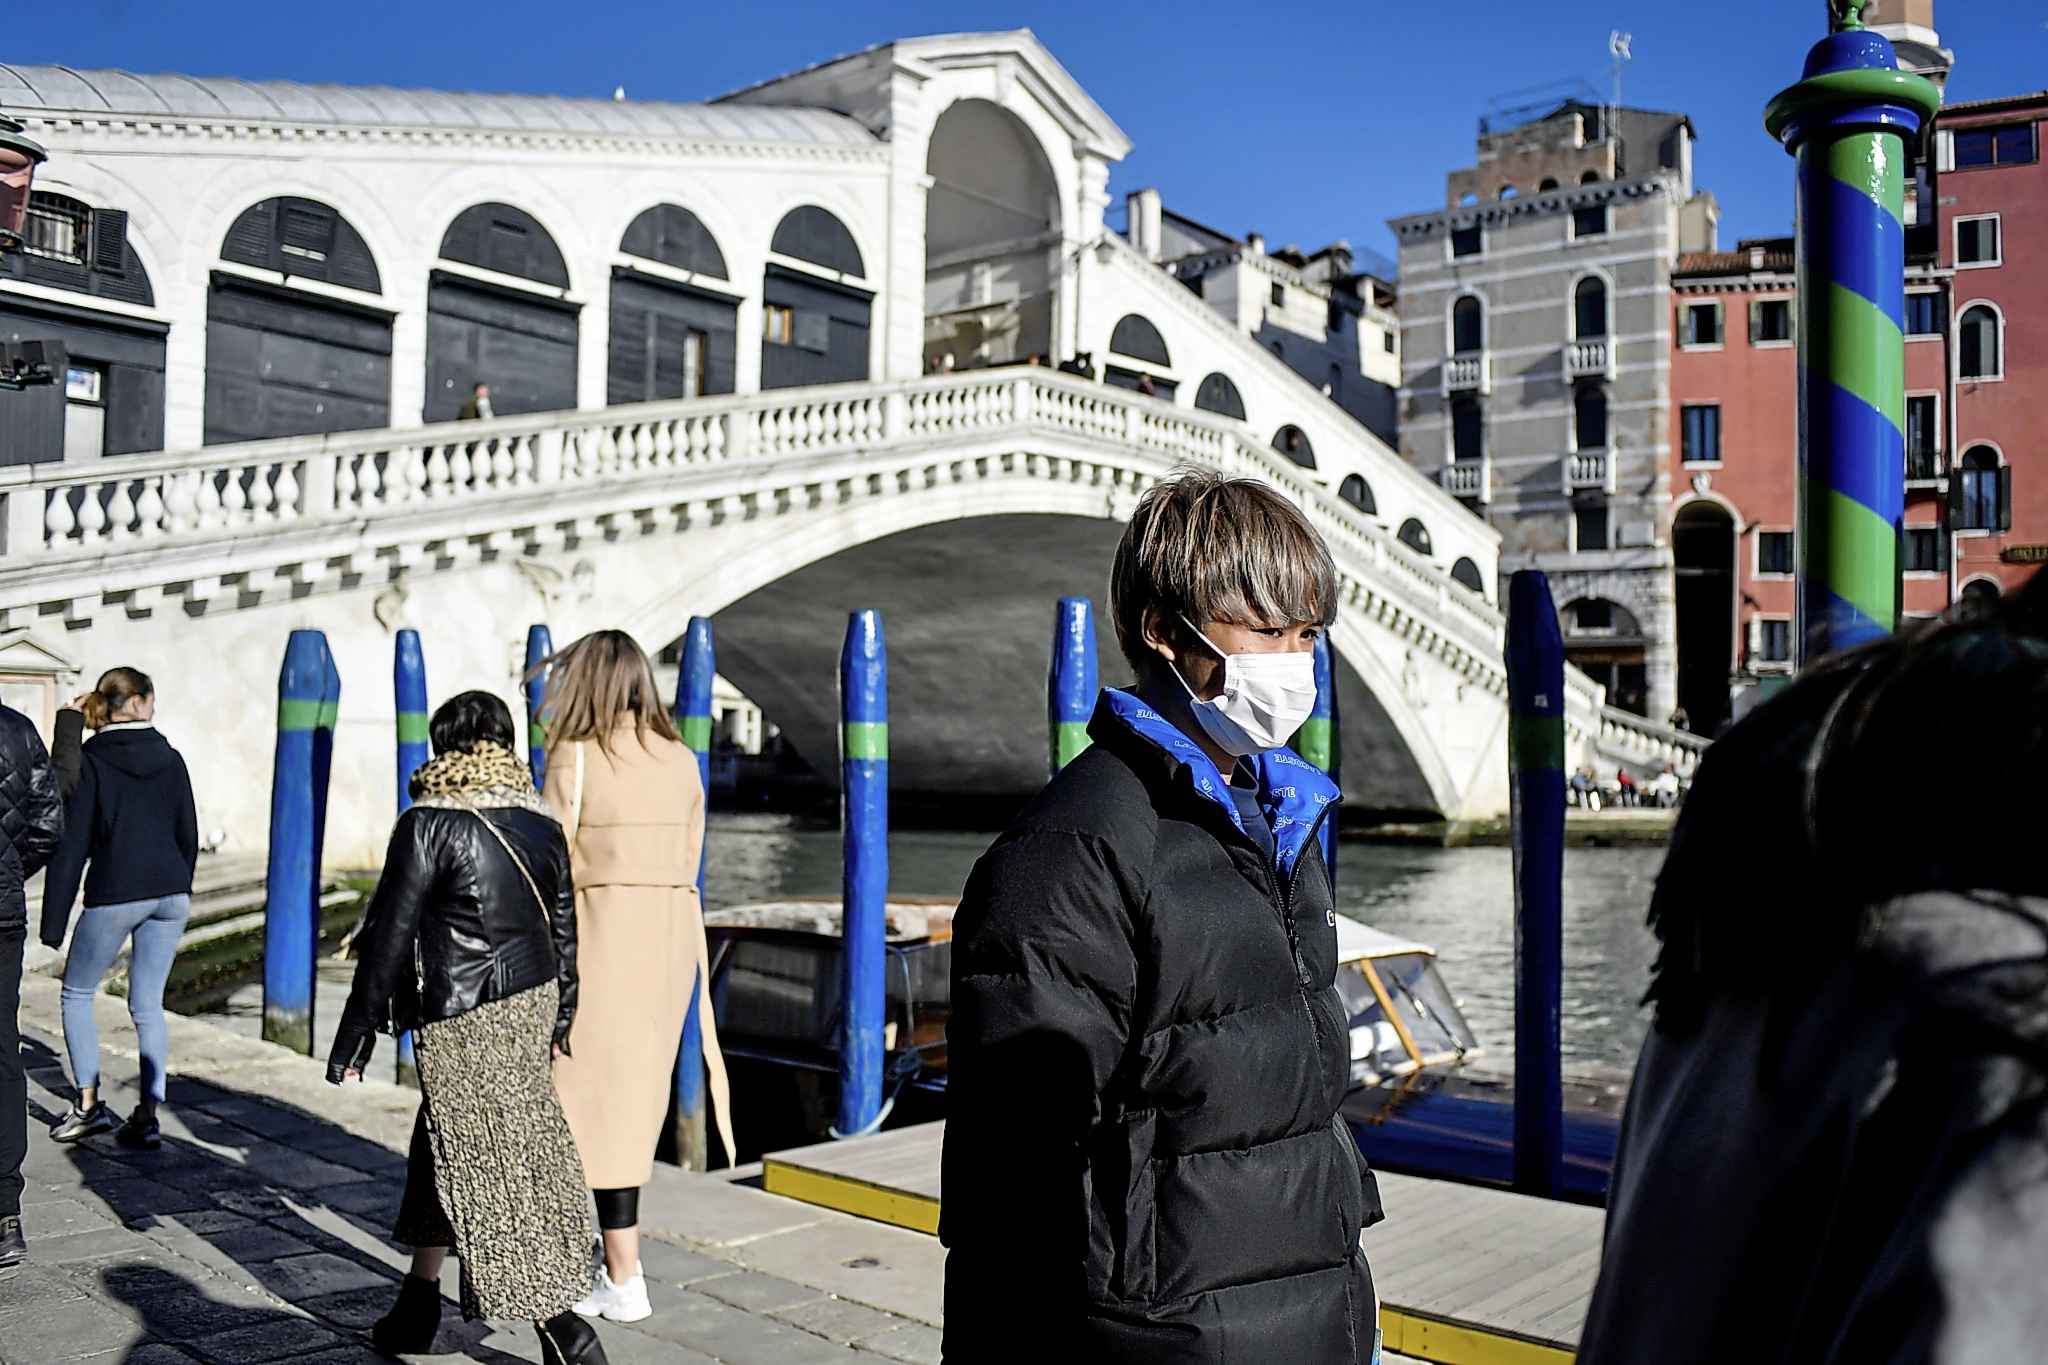 A man wearing a protective mask walks past the Rialto Bridge in Venice, Italy on Friday. The number of countries in which COVID-19 has been confirmed approached 60 by the end of the week. (Claudio Furlan / Lapresse)